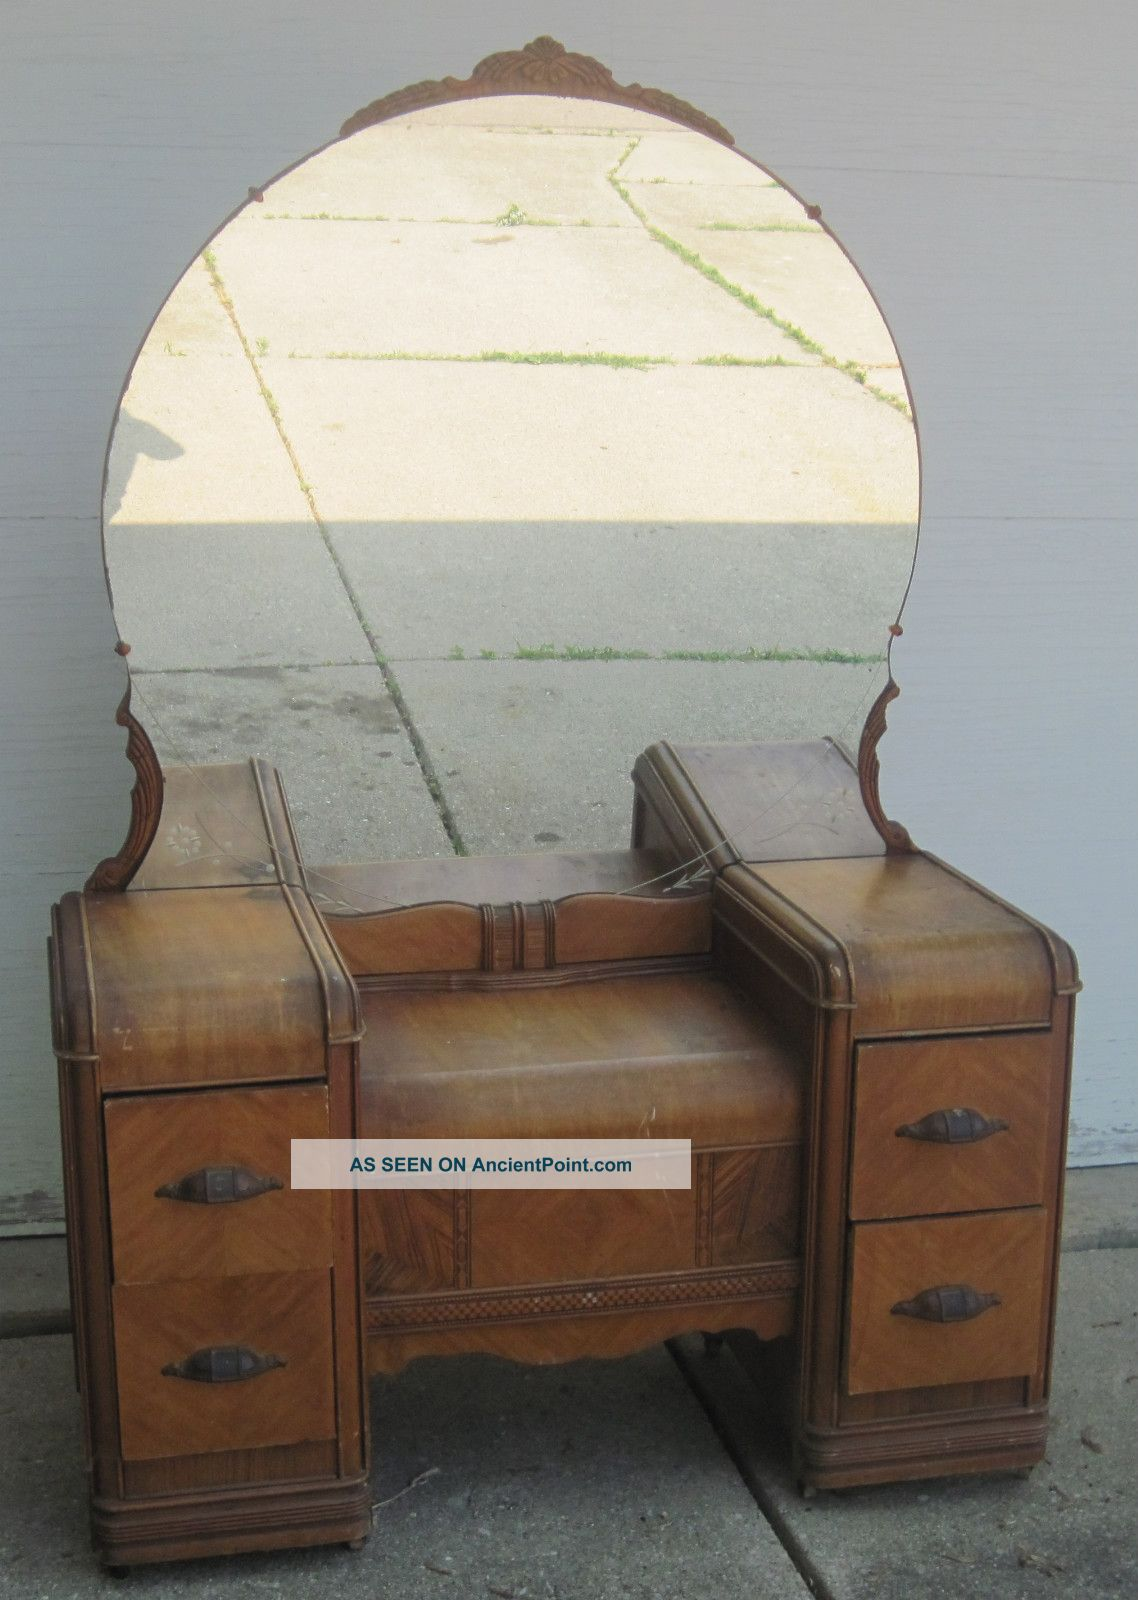 antique wooden hayworth vanity with mirror for inspiring furniture ideas - Furniture: Antique Wooden Hayworth Vanity With Mirror For